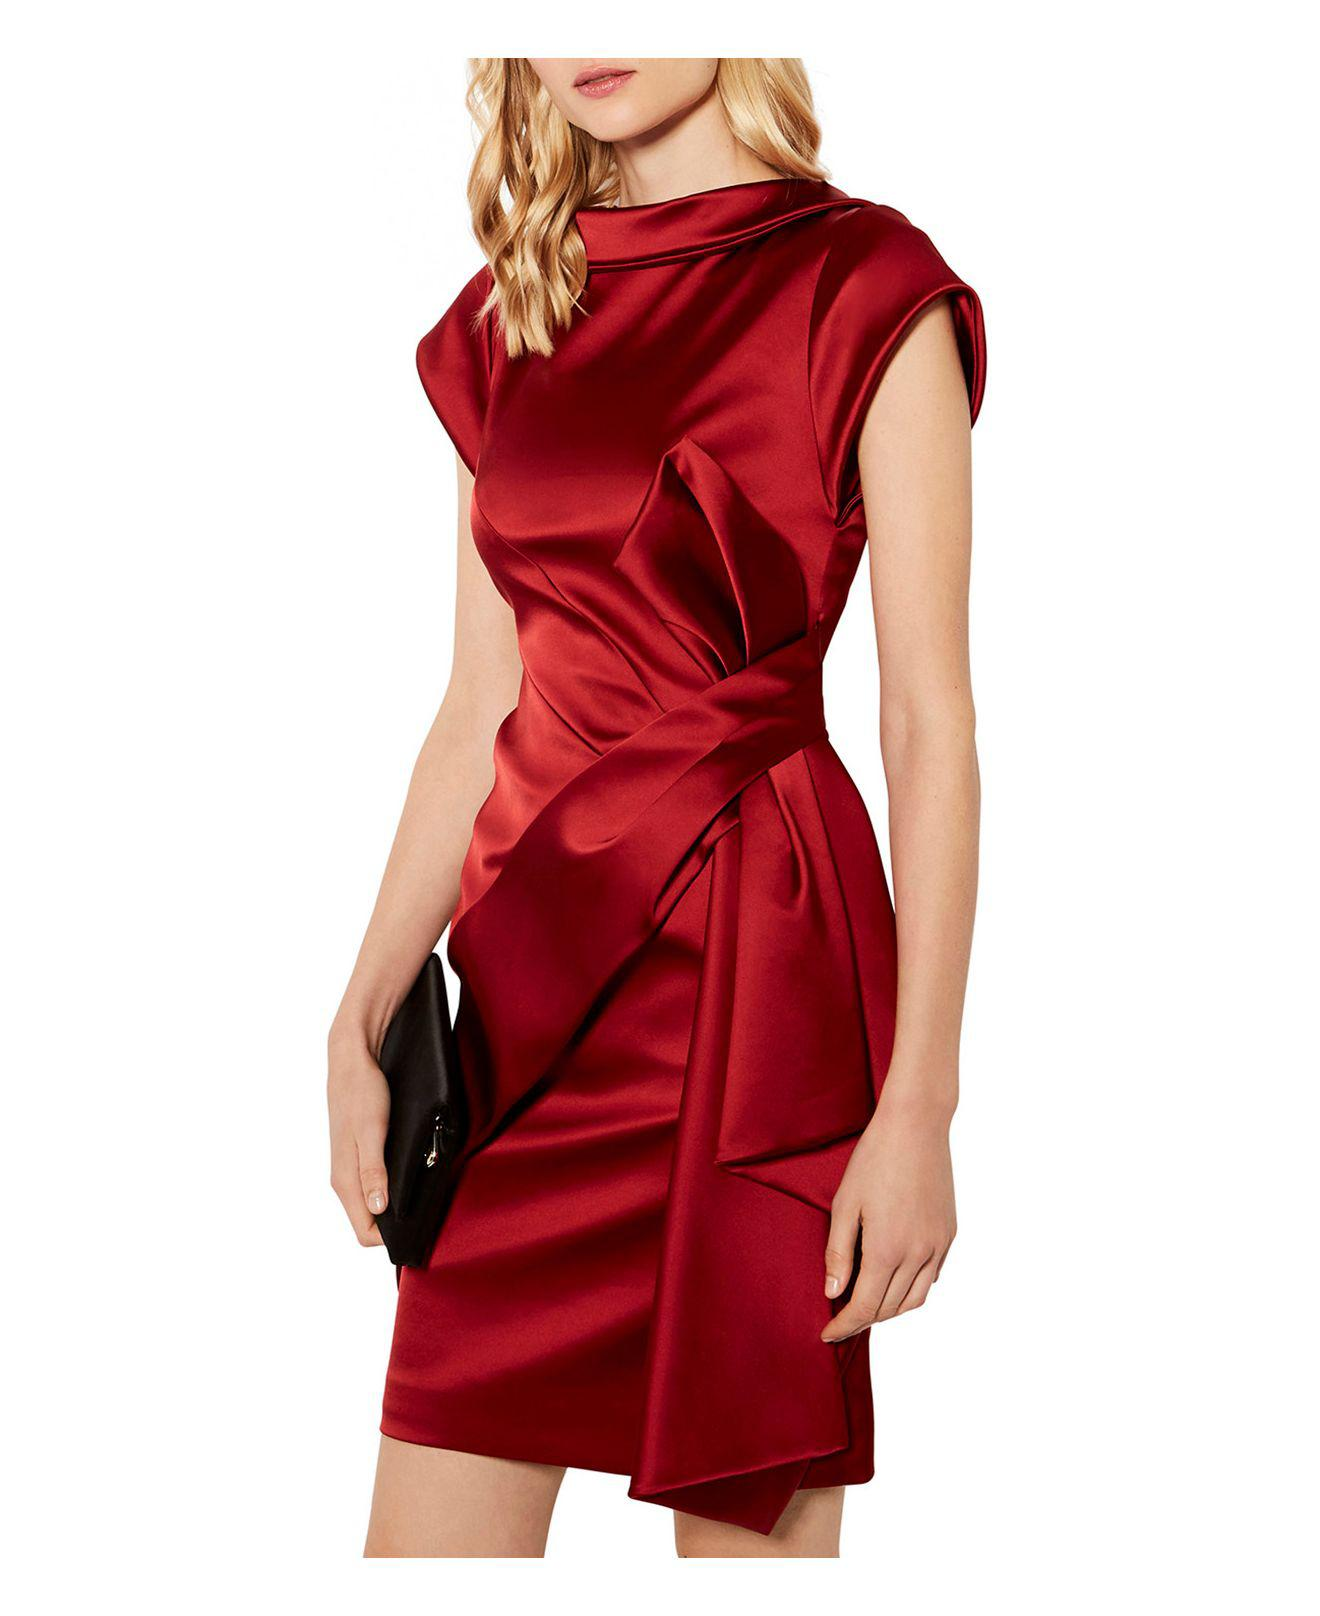 Billedresultat for karen millen red dress